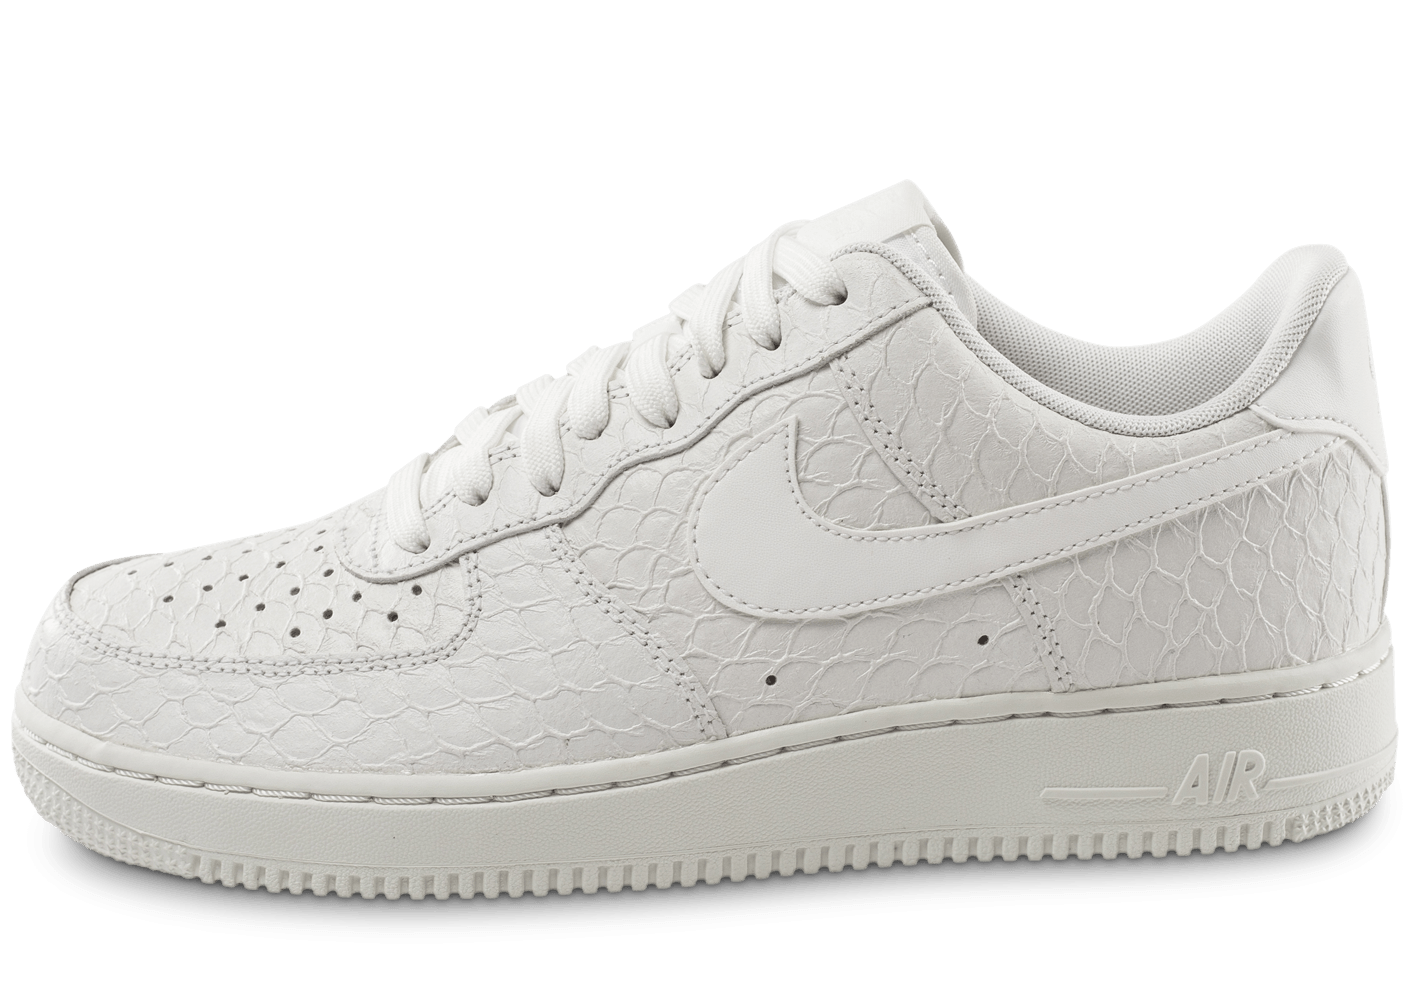 Nike Air Force 1 07 LV8 Snake blanche